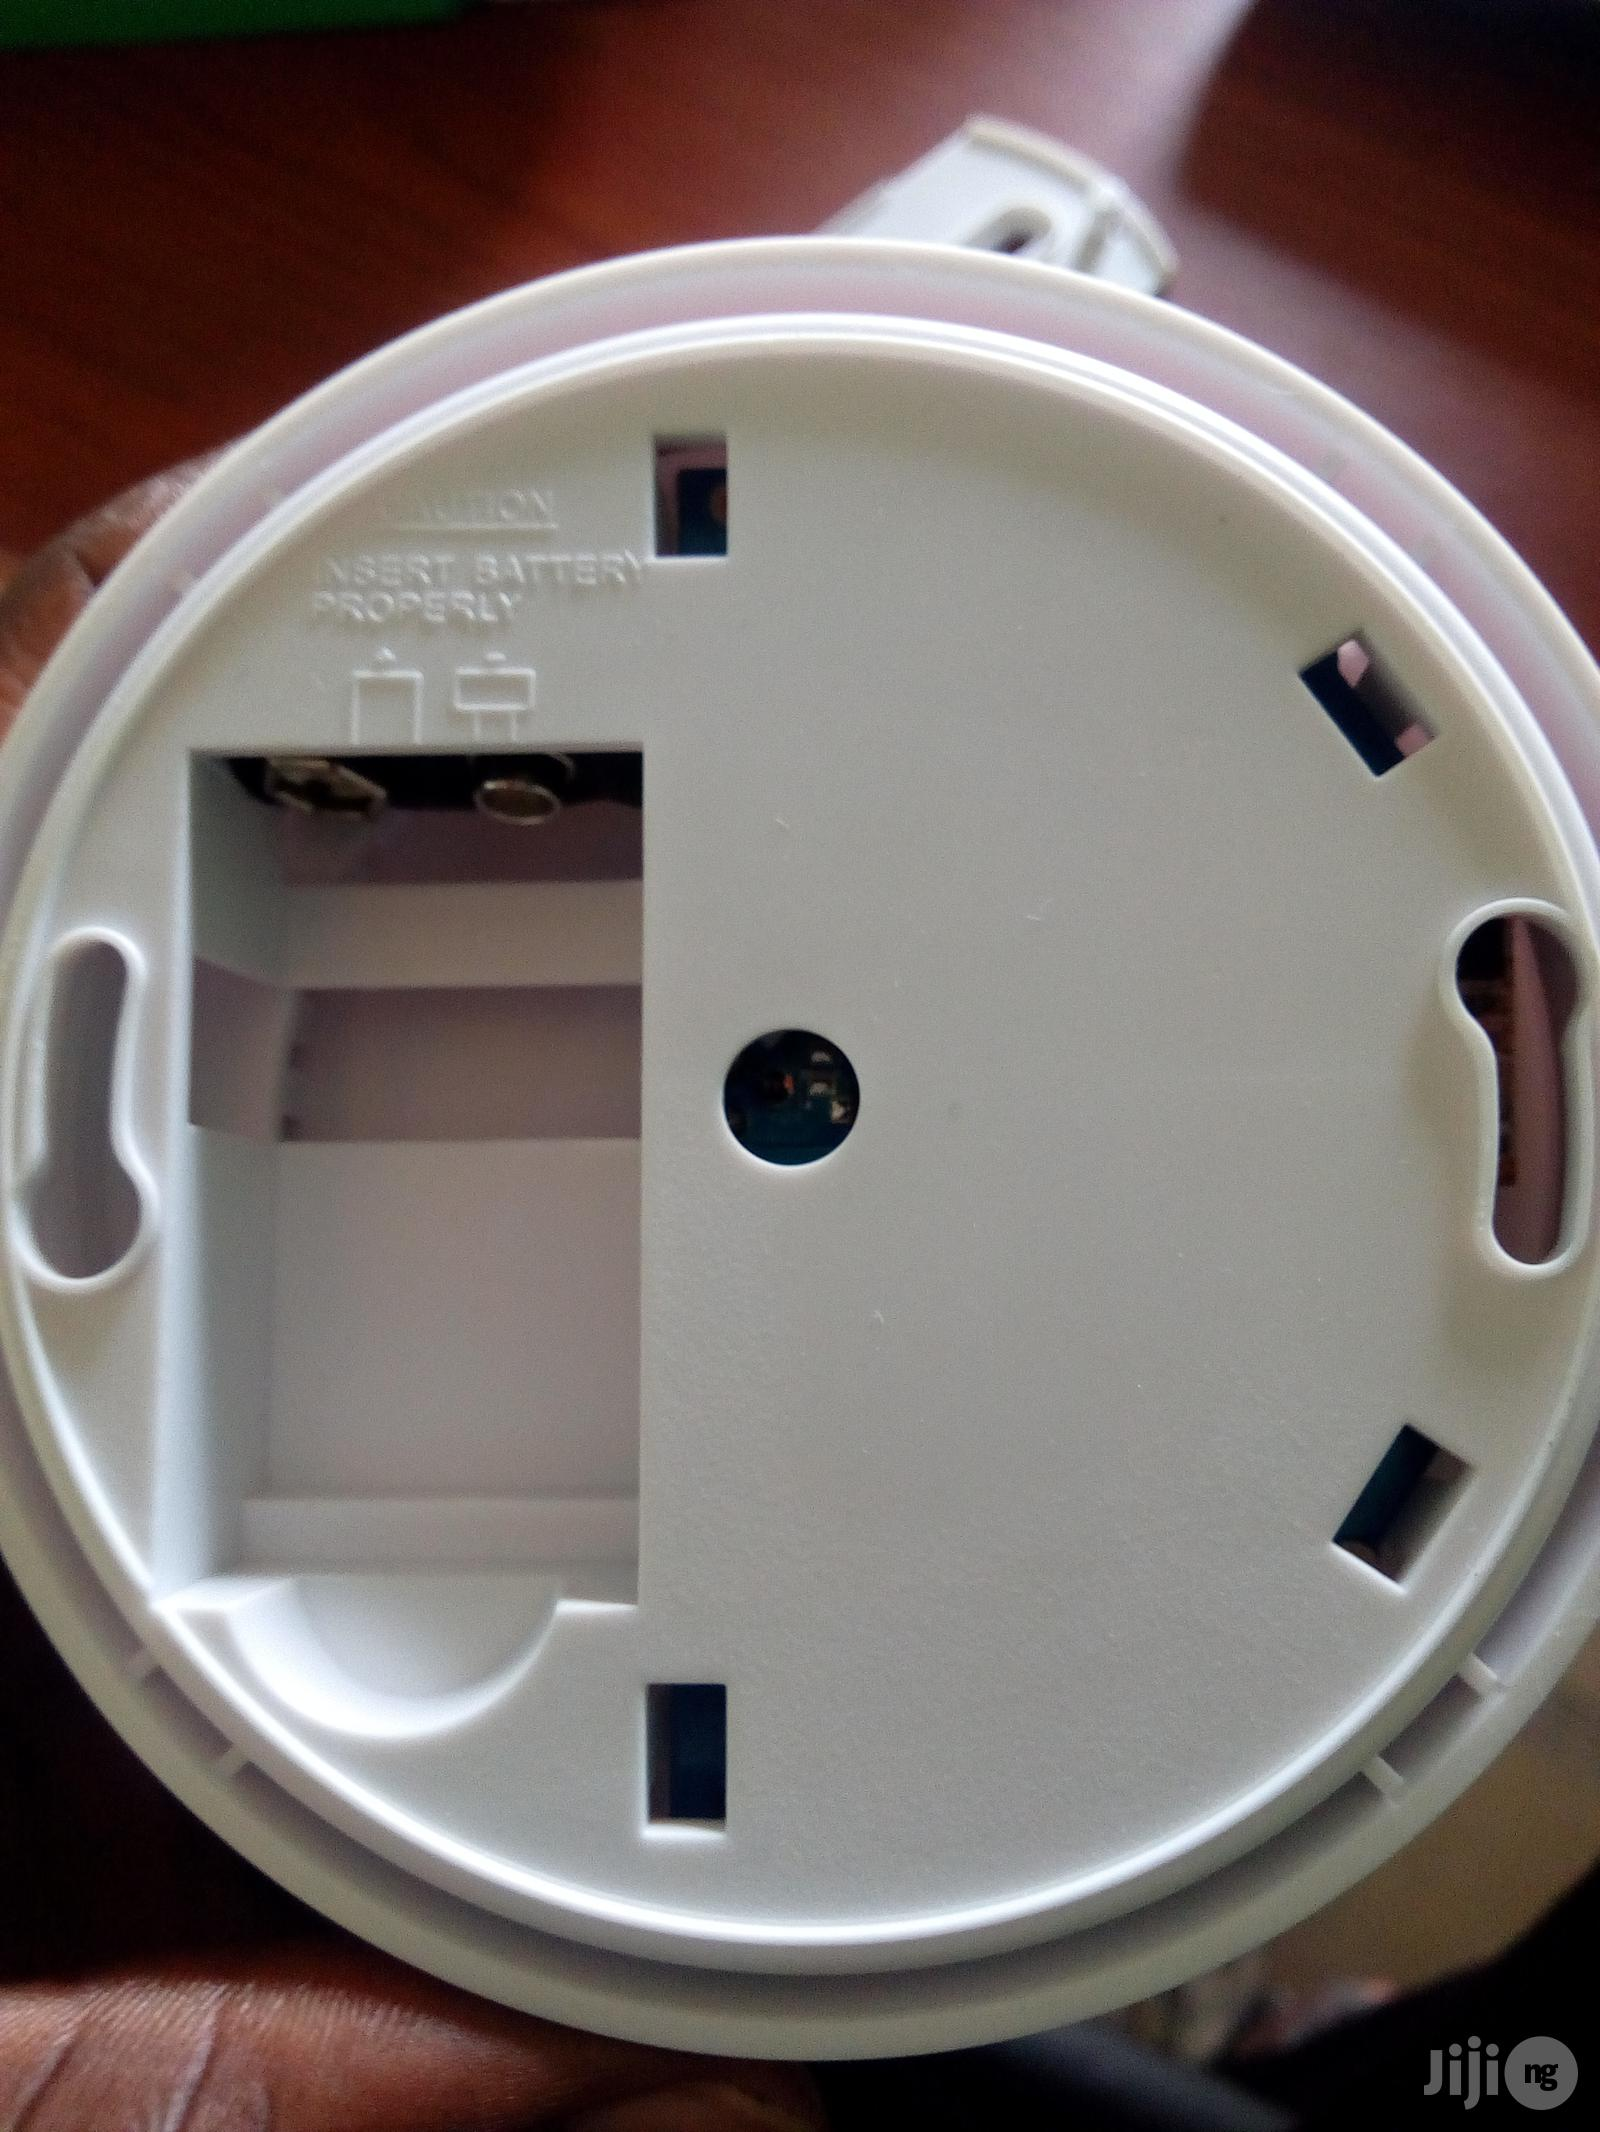 Wireless Smoke Alarm Device | Home Appliances for sale in Port-Harcourt, Rivers State, Nigeria